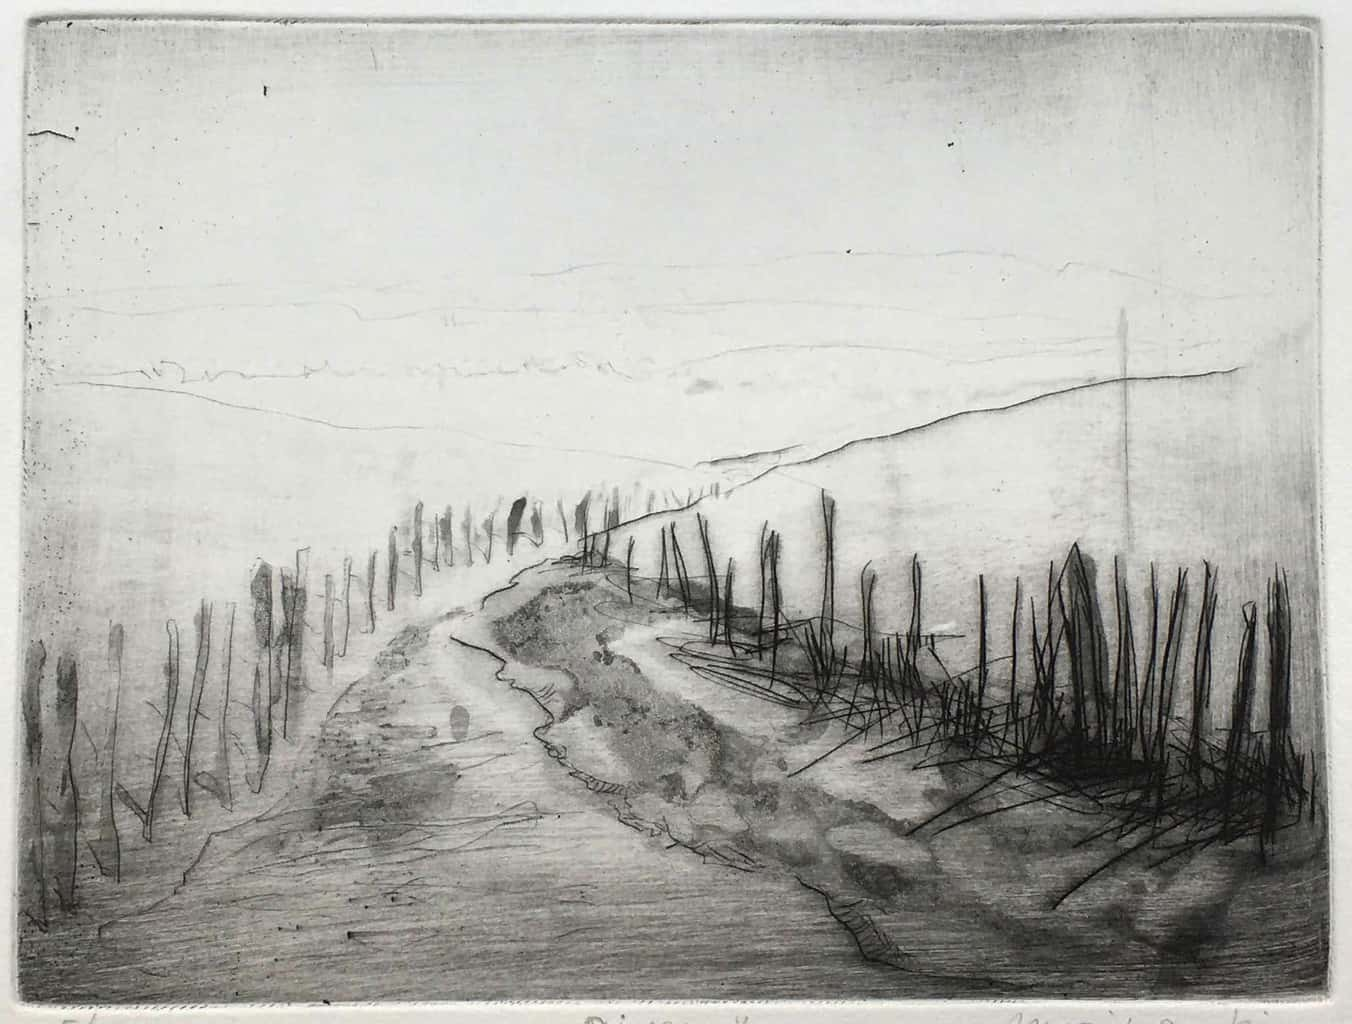 """""""River"""" - Line drawing of a river with muddy banks. English seaside landscape. Original print drypoint aquatint by painter-printmaker Marina Kim"""